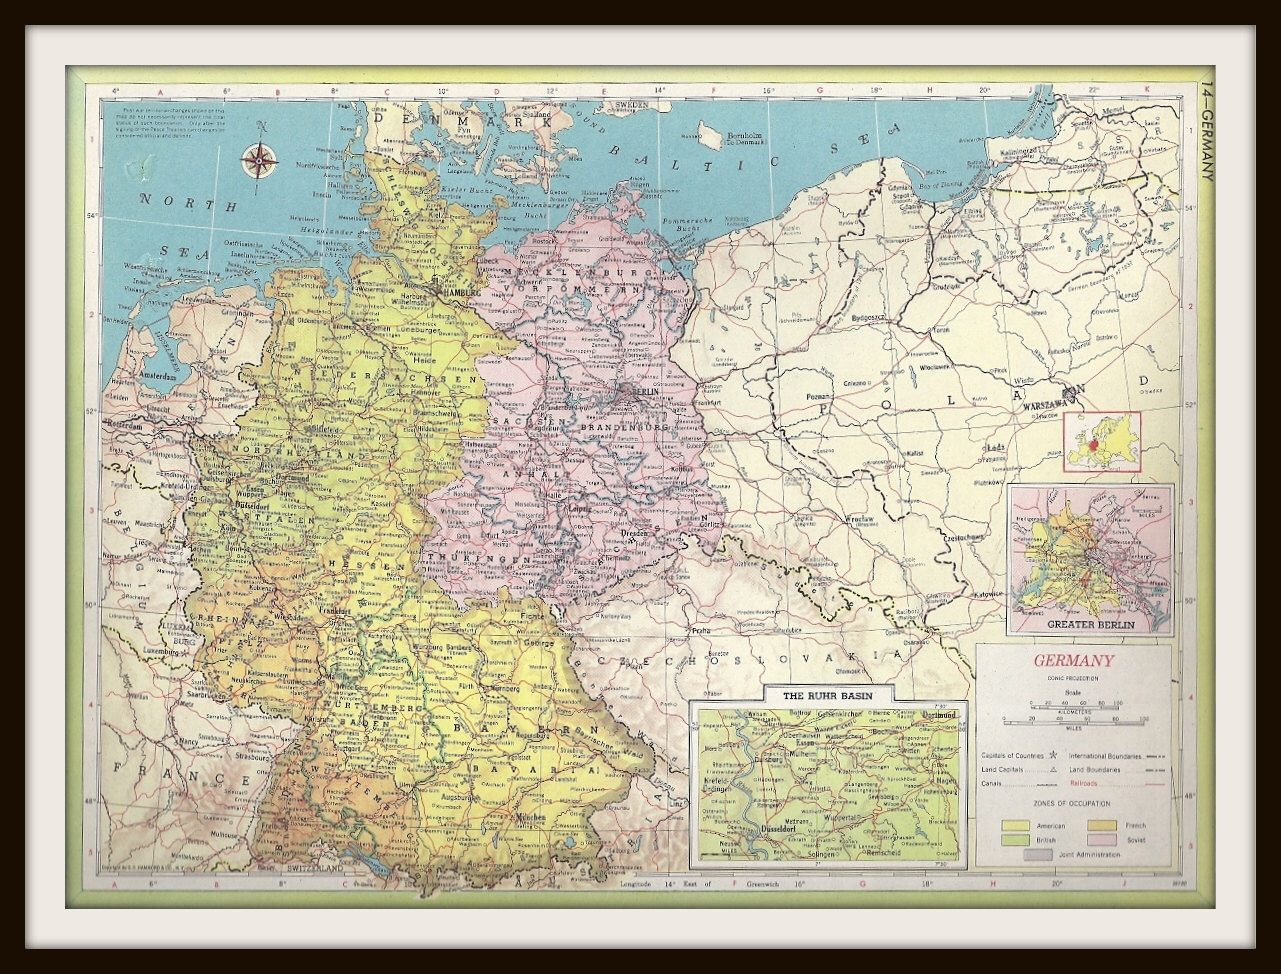 Vintage atlas map 2 1952 occupied post world war 2 germany vintage atlas map 2 1952 occupied post world war 2 germany gumiabroncs